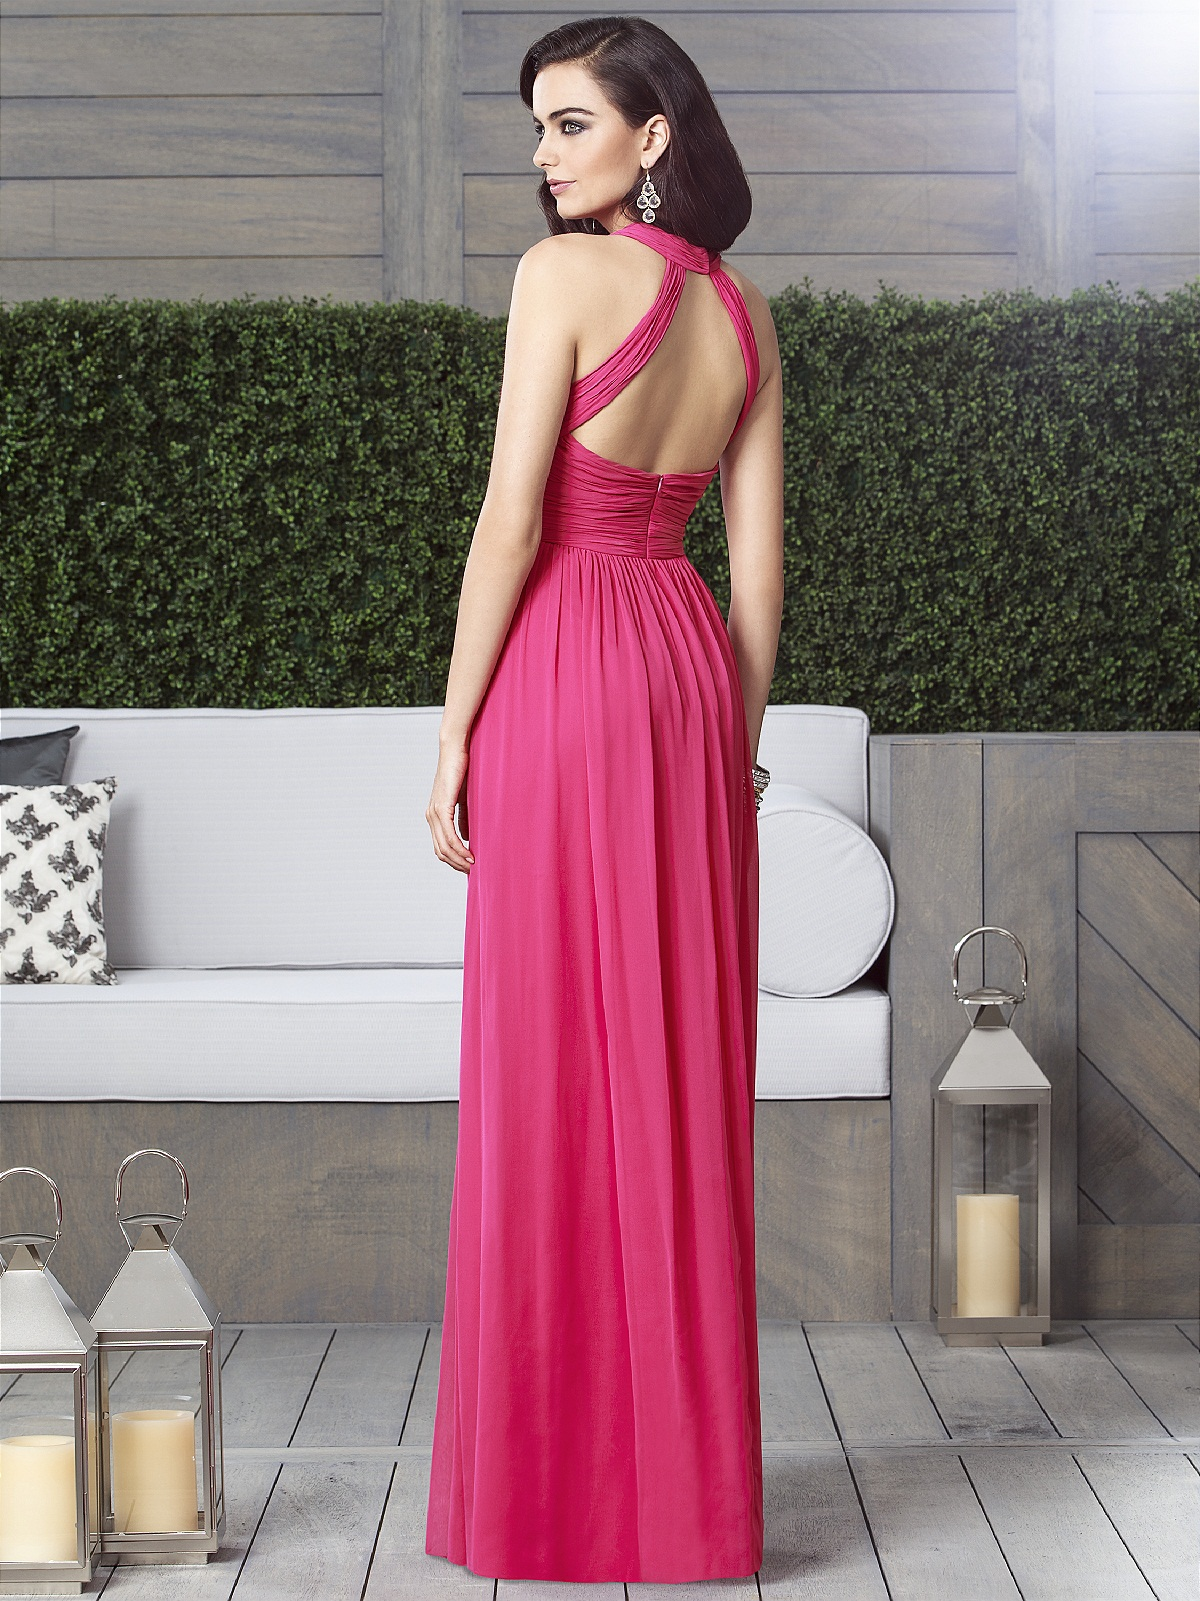 Dessy bridesmaid dressesdessy dresses 2908d2908the dessy group dessy bridesmaid dresses dessy 2908 ombrellifo Gallery